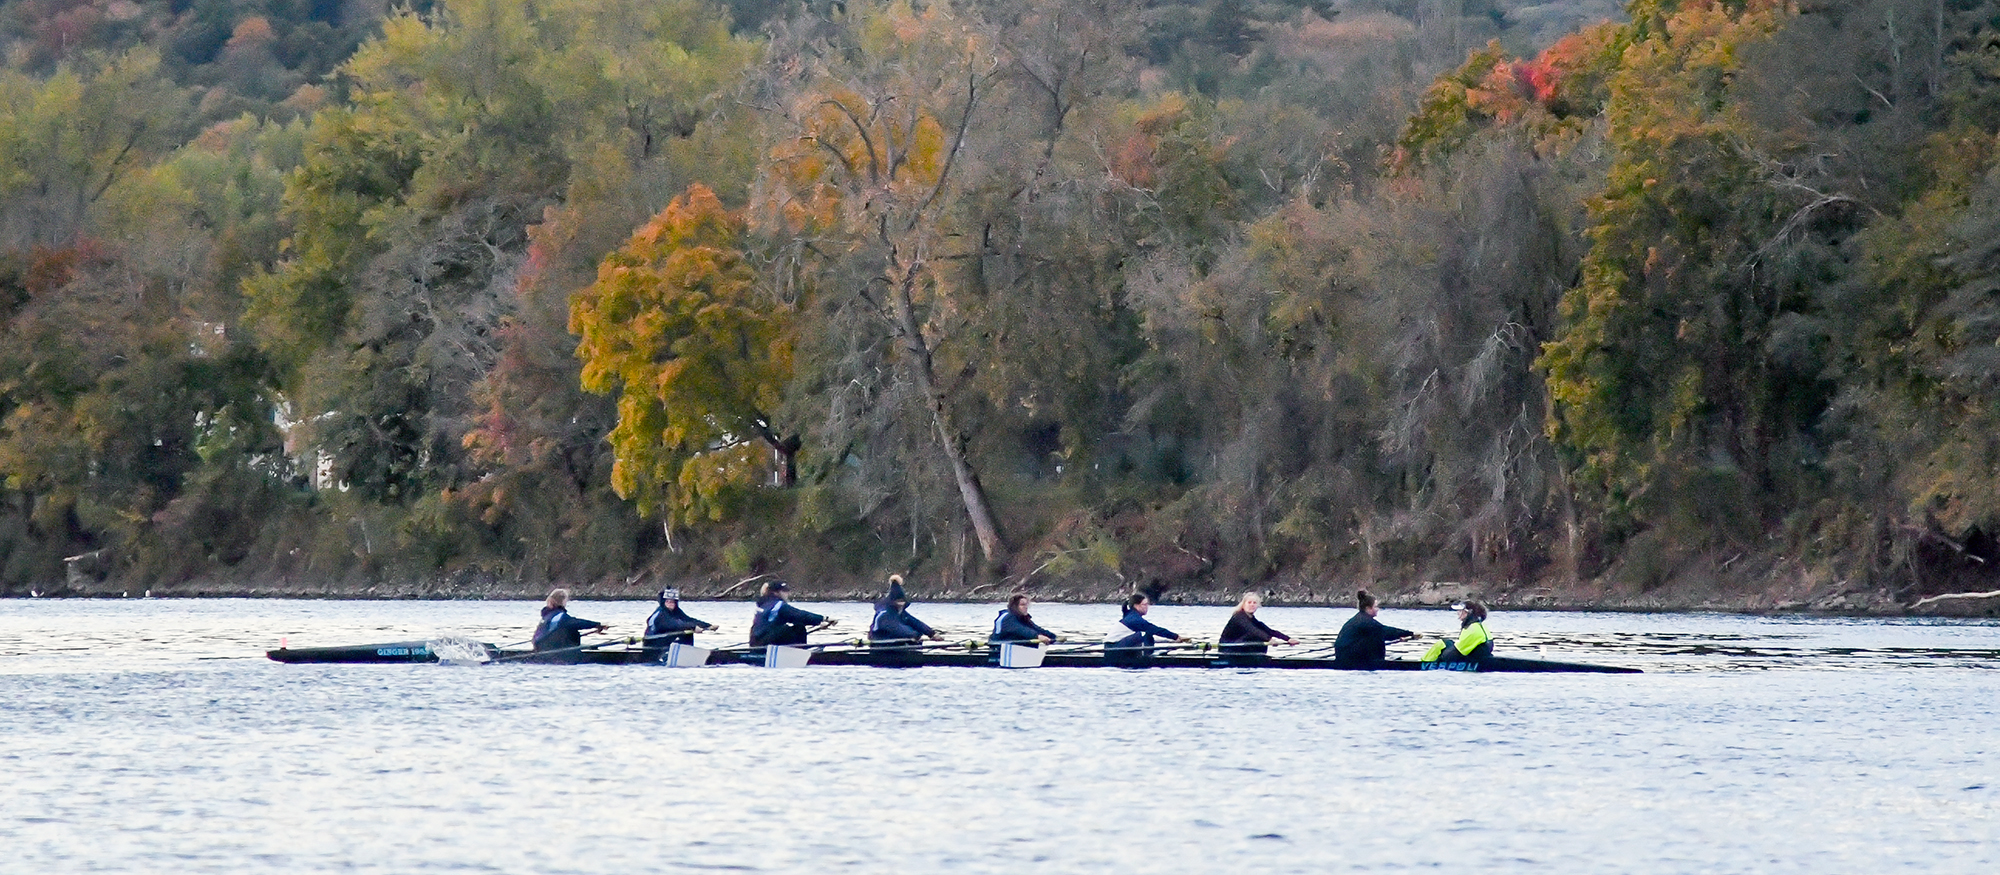 Action photo of the Lyons rowing team on the water of the Connecticut River.